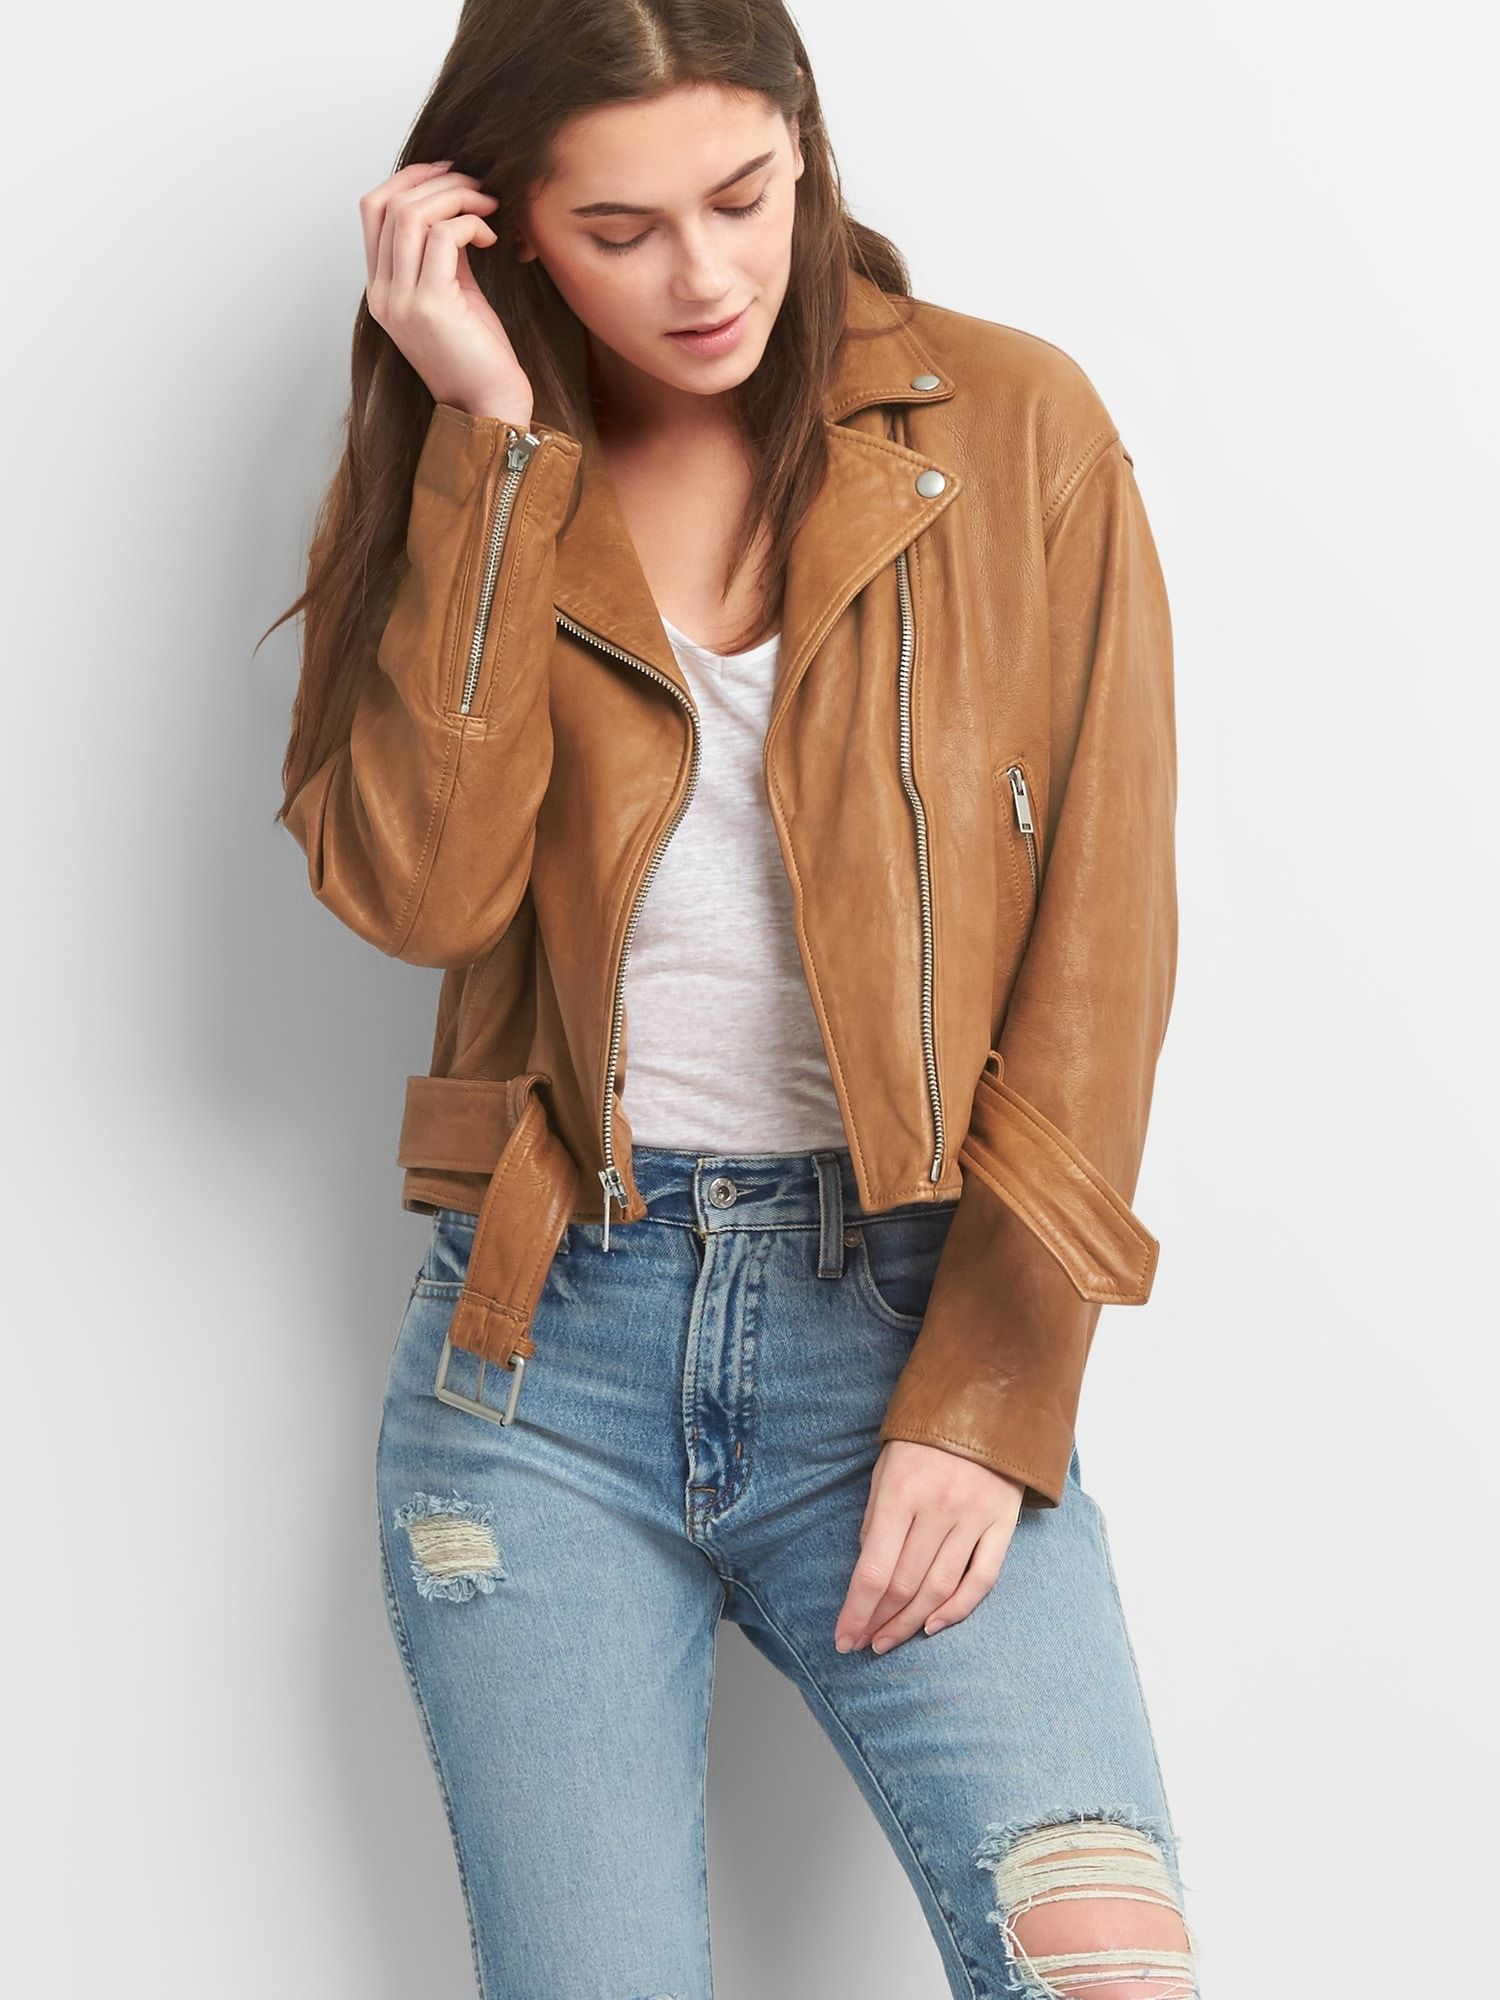 Belted Moto Jacket in Leather Gap Jacket outfit women